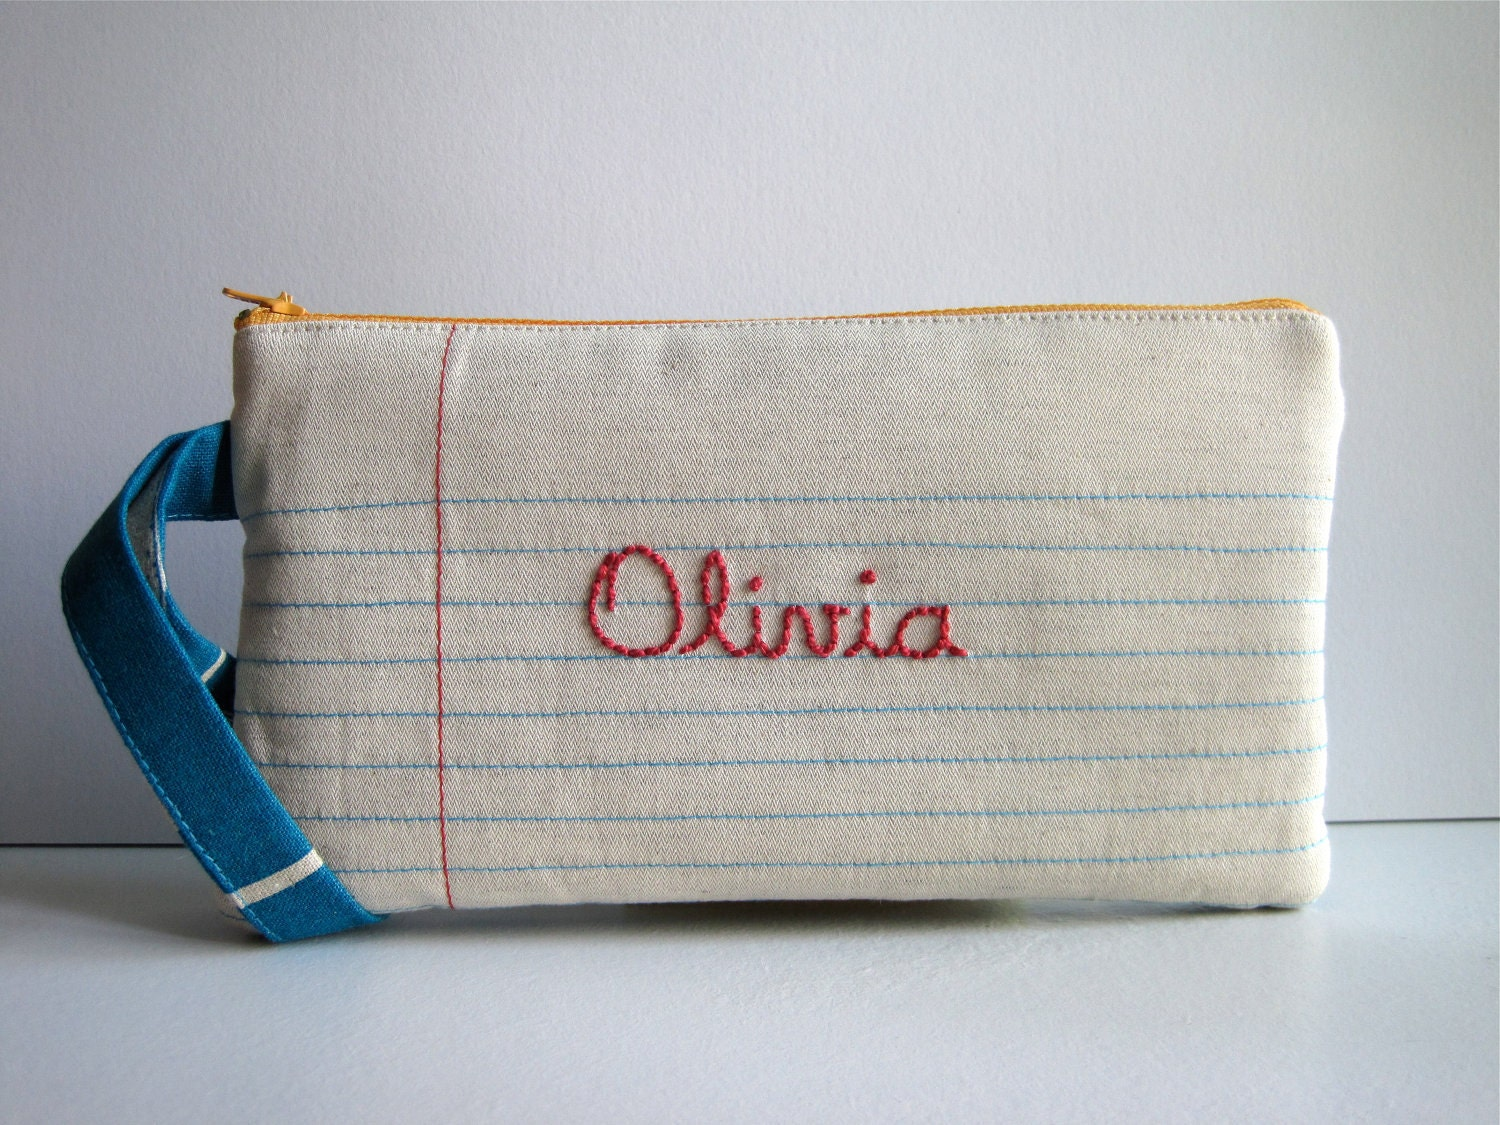 Lined Paper, Writing Paper Fabric and Hand-Embroidered Name. Pencil Case, Pencil Pouch, Wristlet.